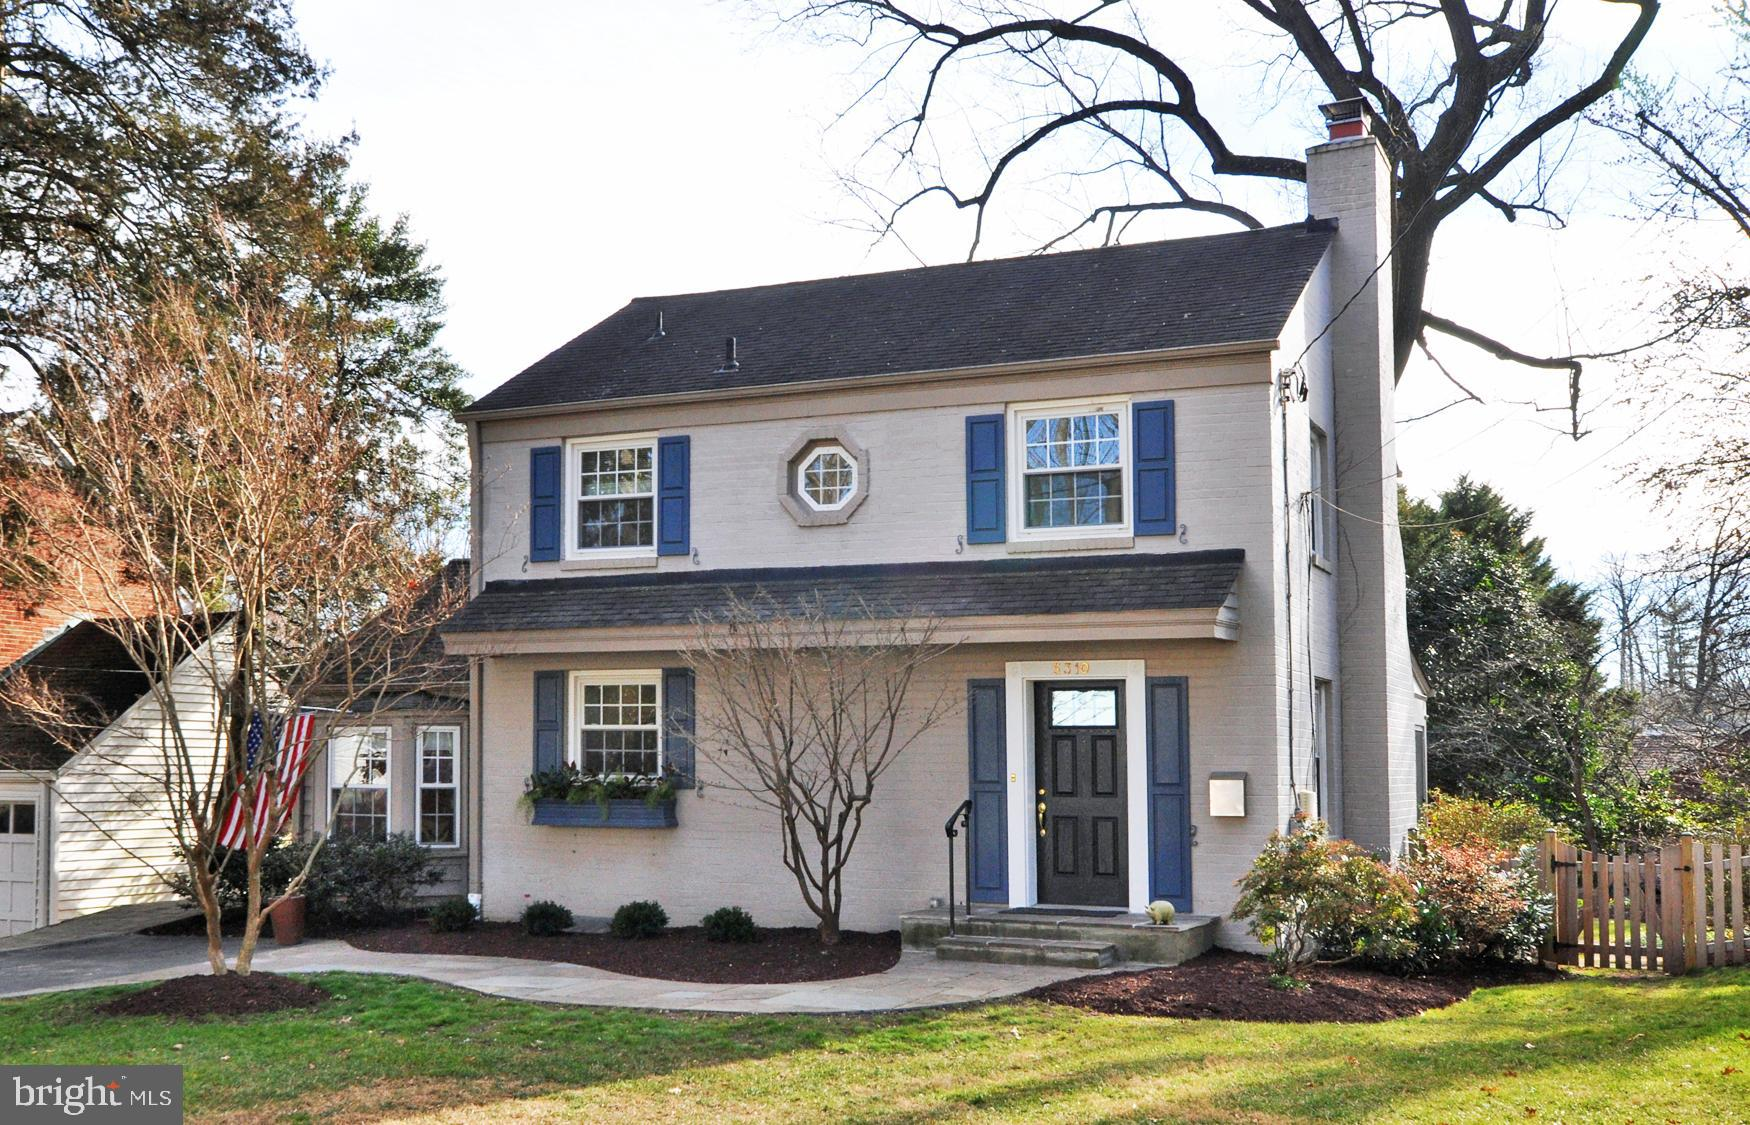 New on Market....Open Sat (1-3)/Sun 1-3:30).  Excellent condition 3BR/2.5BA painted brick colonial.